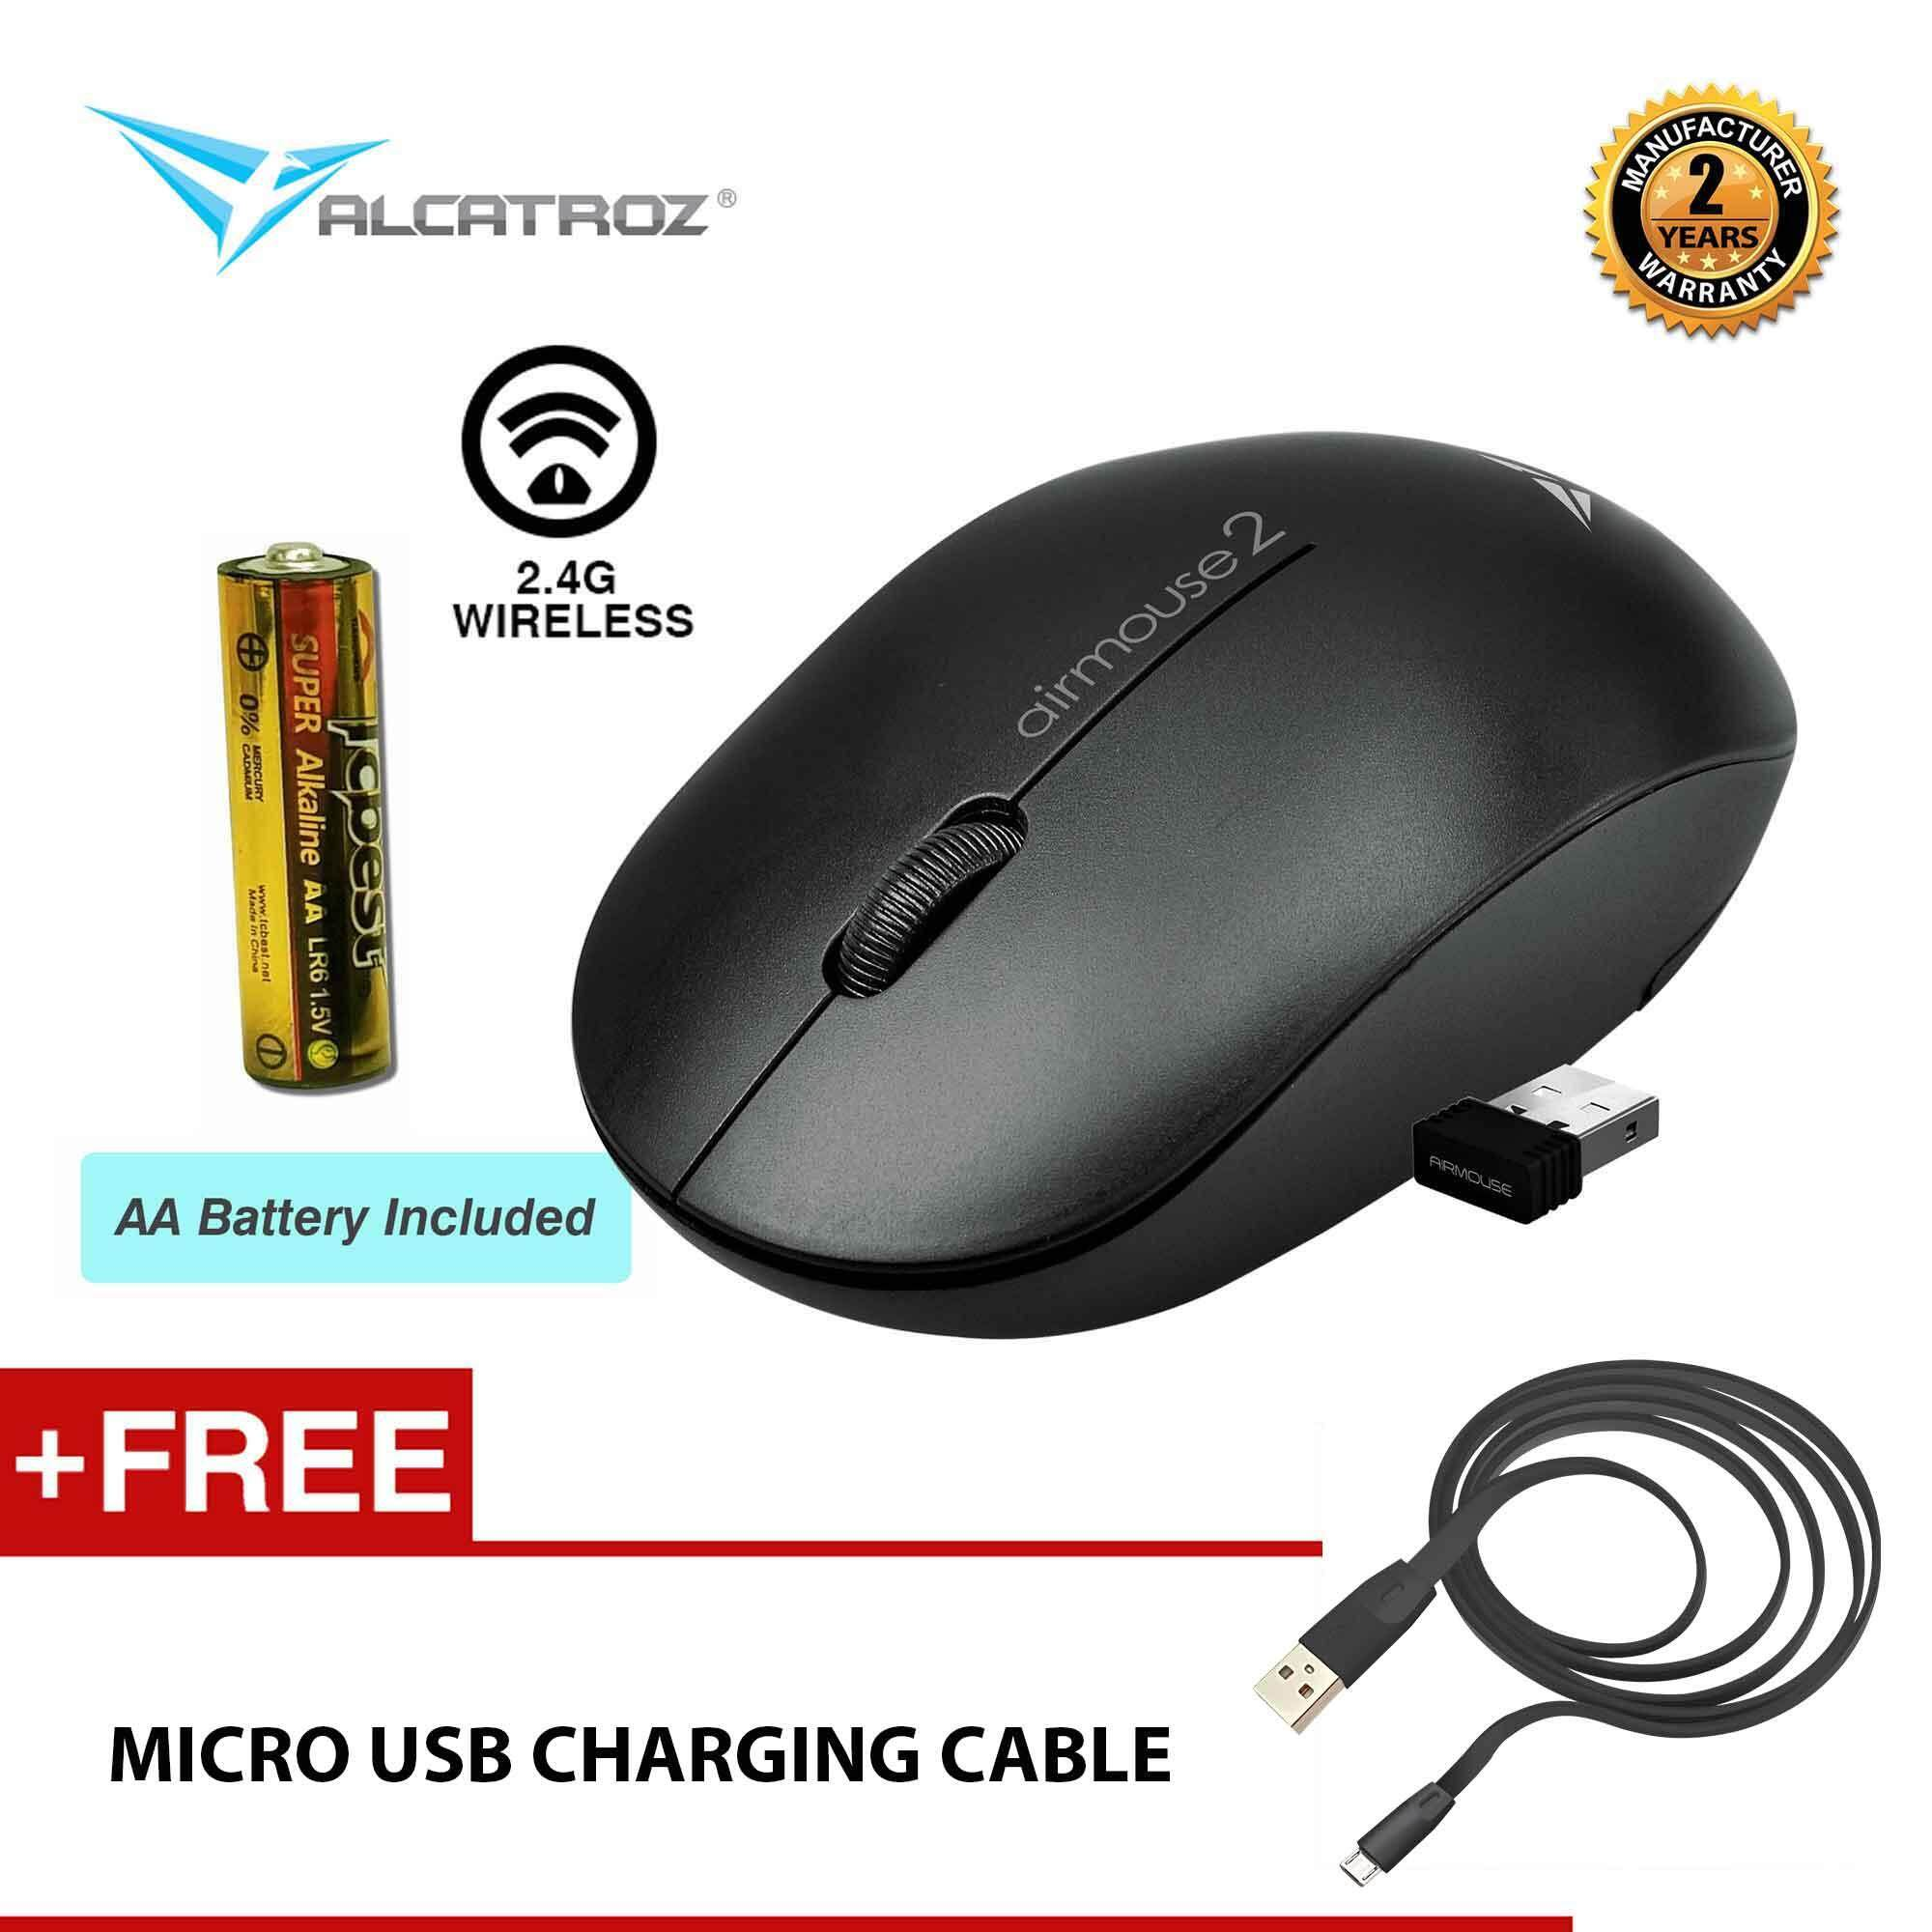 AirMouse 2 High Resolution Wireless Mouse Free Charging Cable By Alcatroz Malaysia